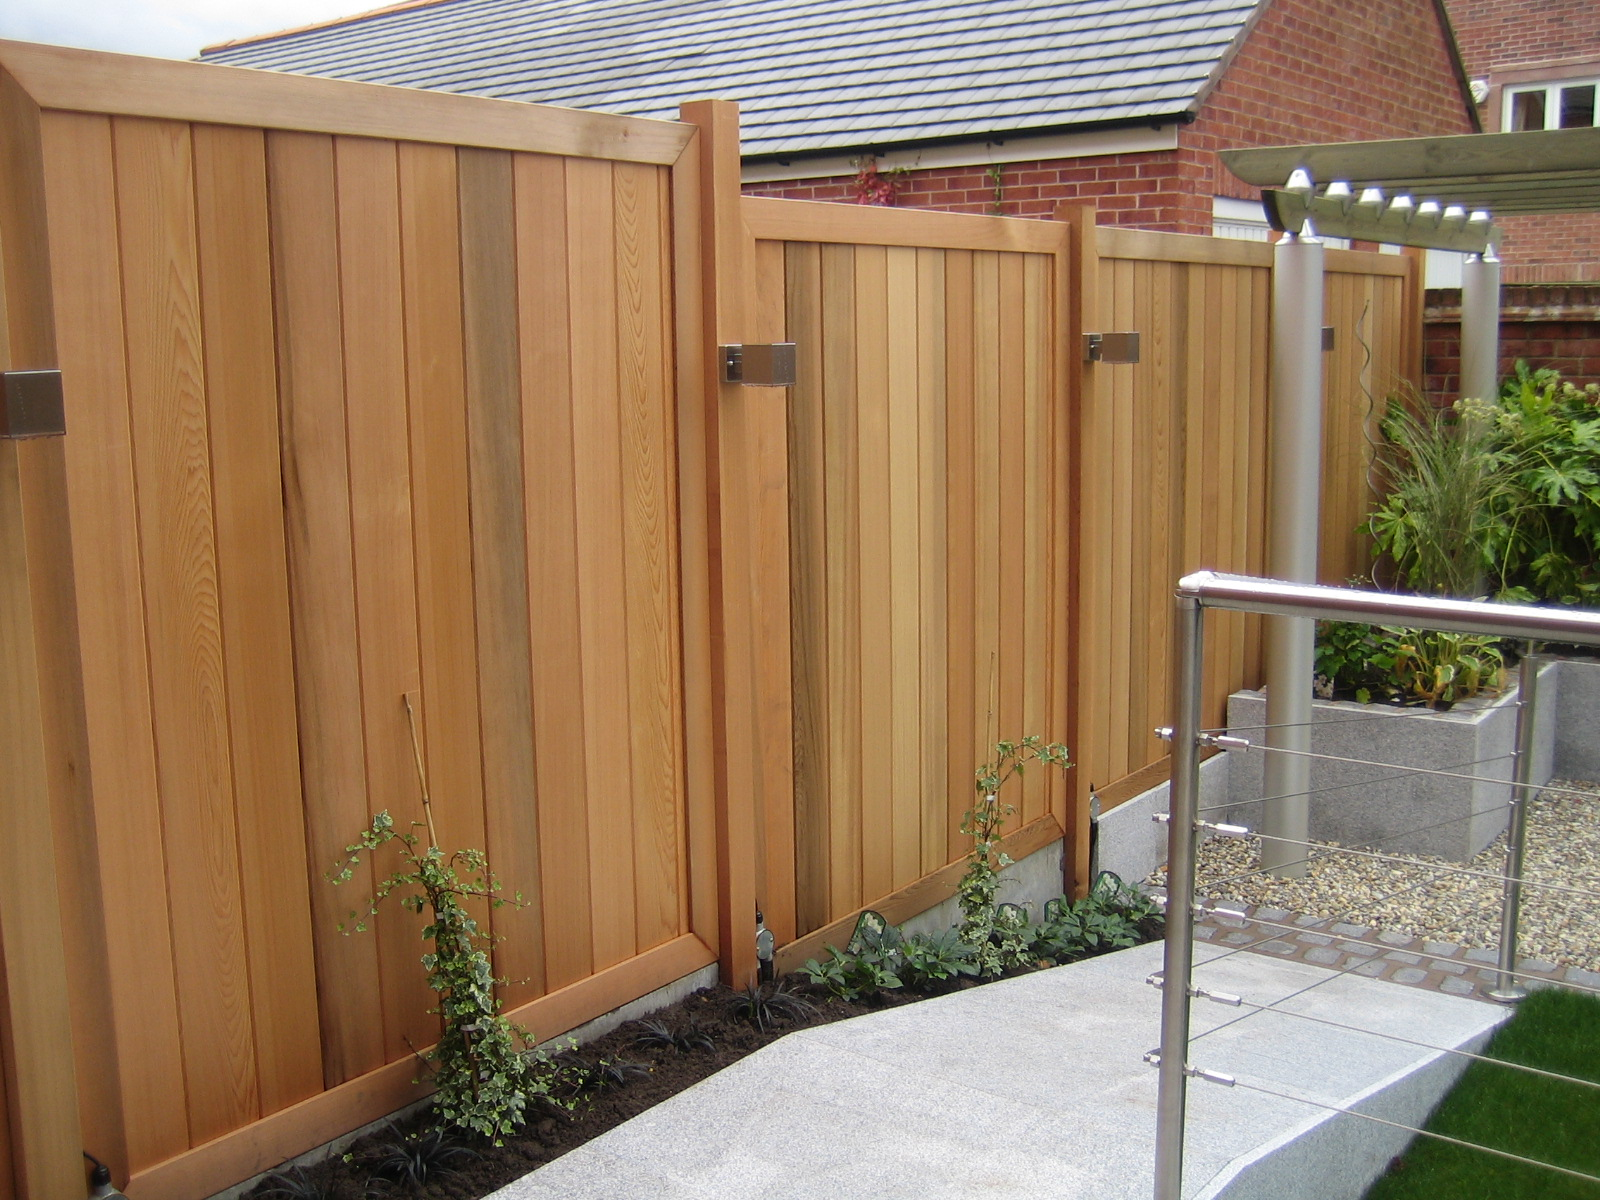 Red Cedar Wood Fence Panels